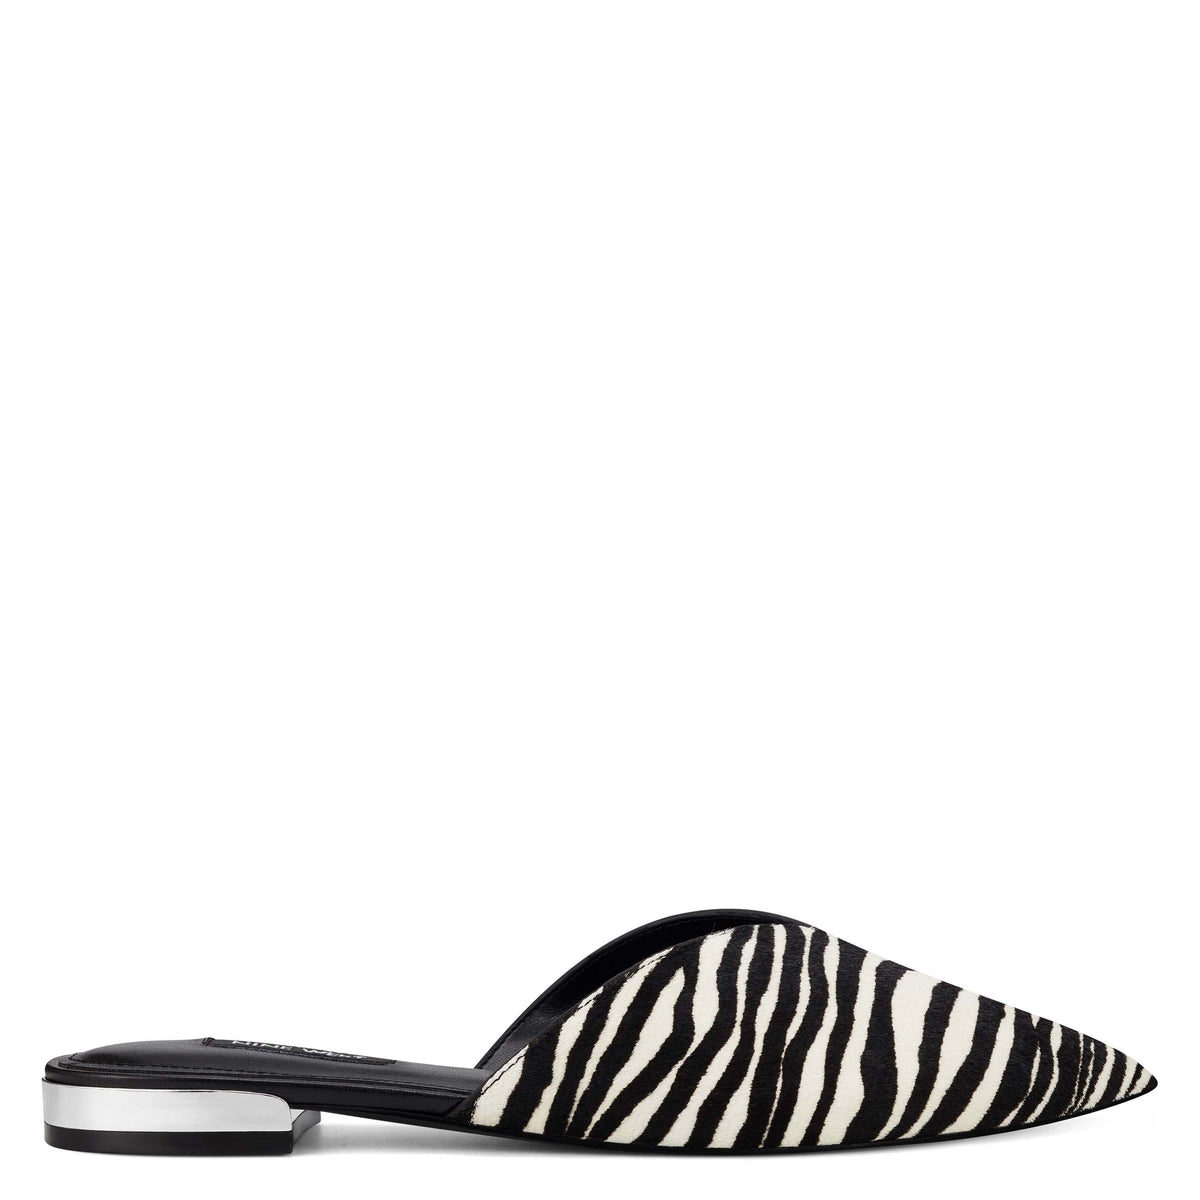 risha-casual-flat-mules-in-zebra-haircalf